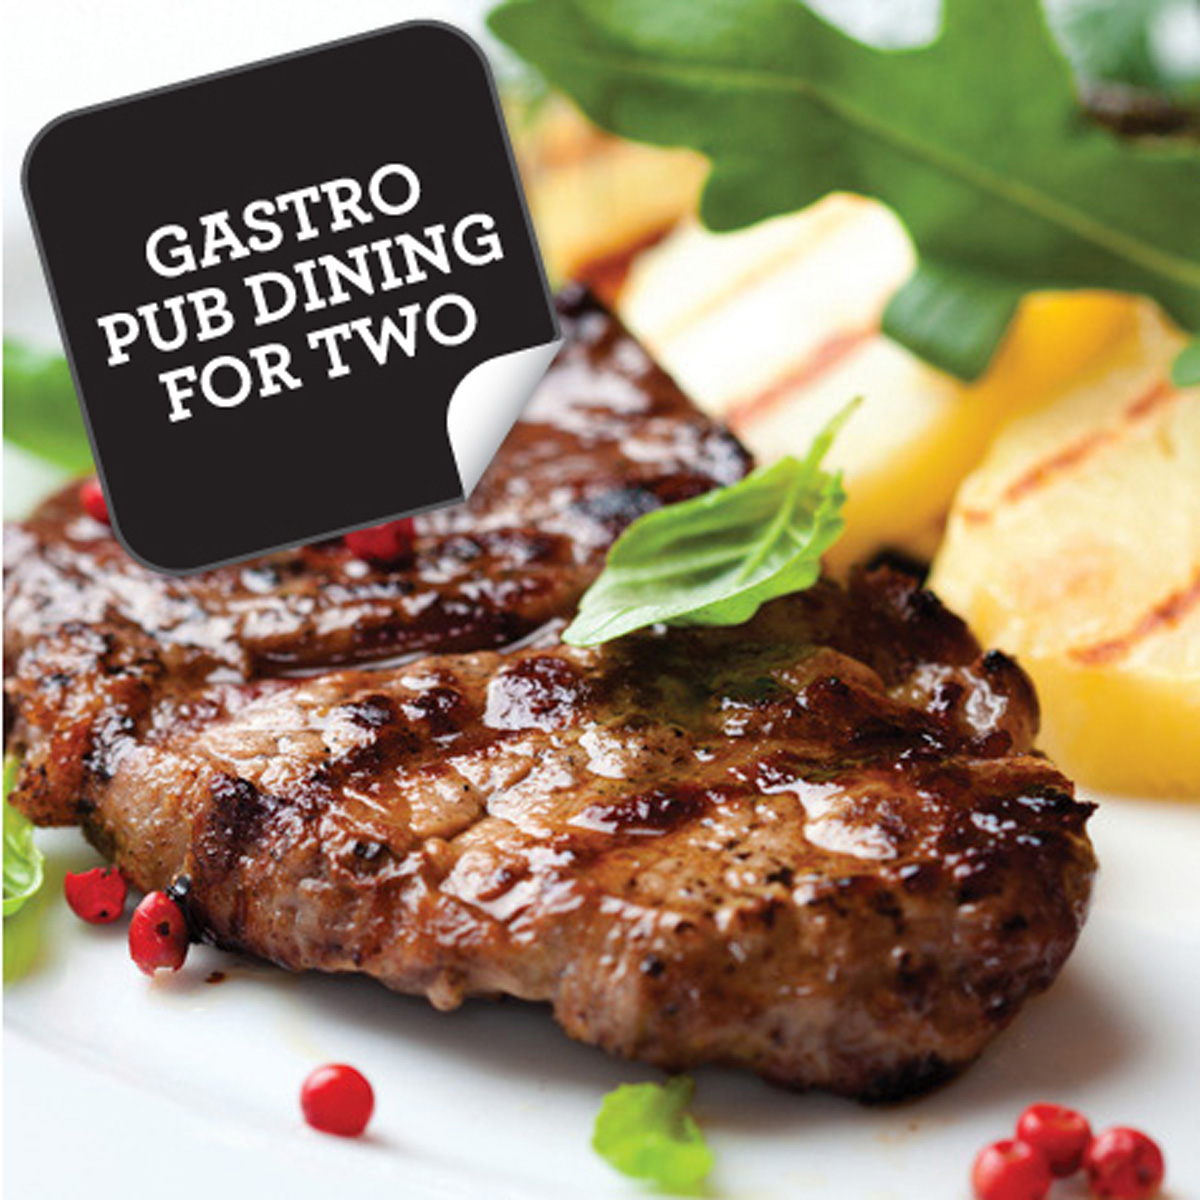 Gastro Pub Dining for Two